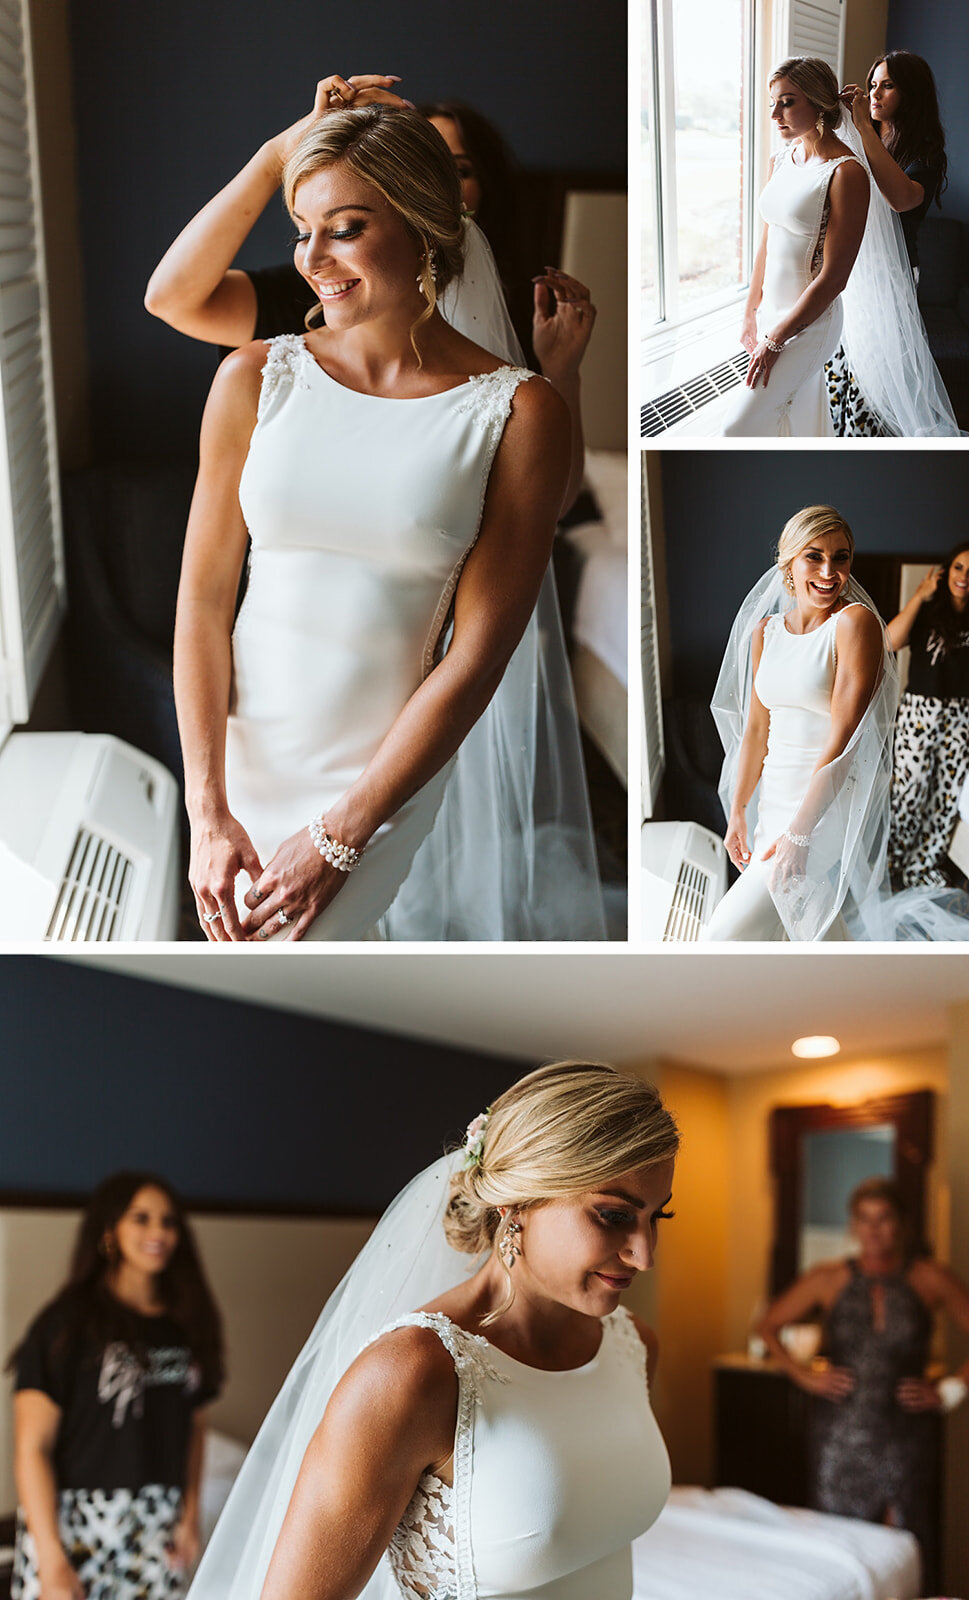 bride putting on veil on her wedding day, at Nationwide Hotel and Conference Center